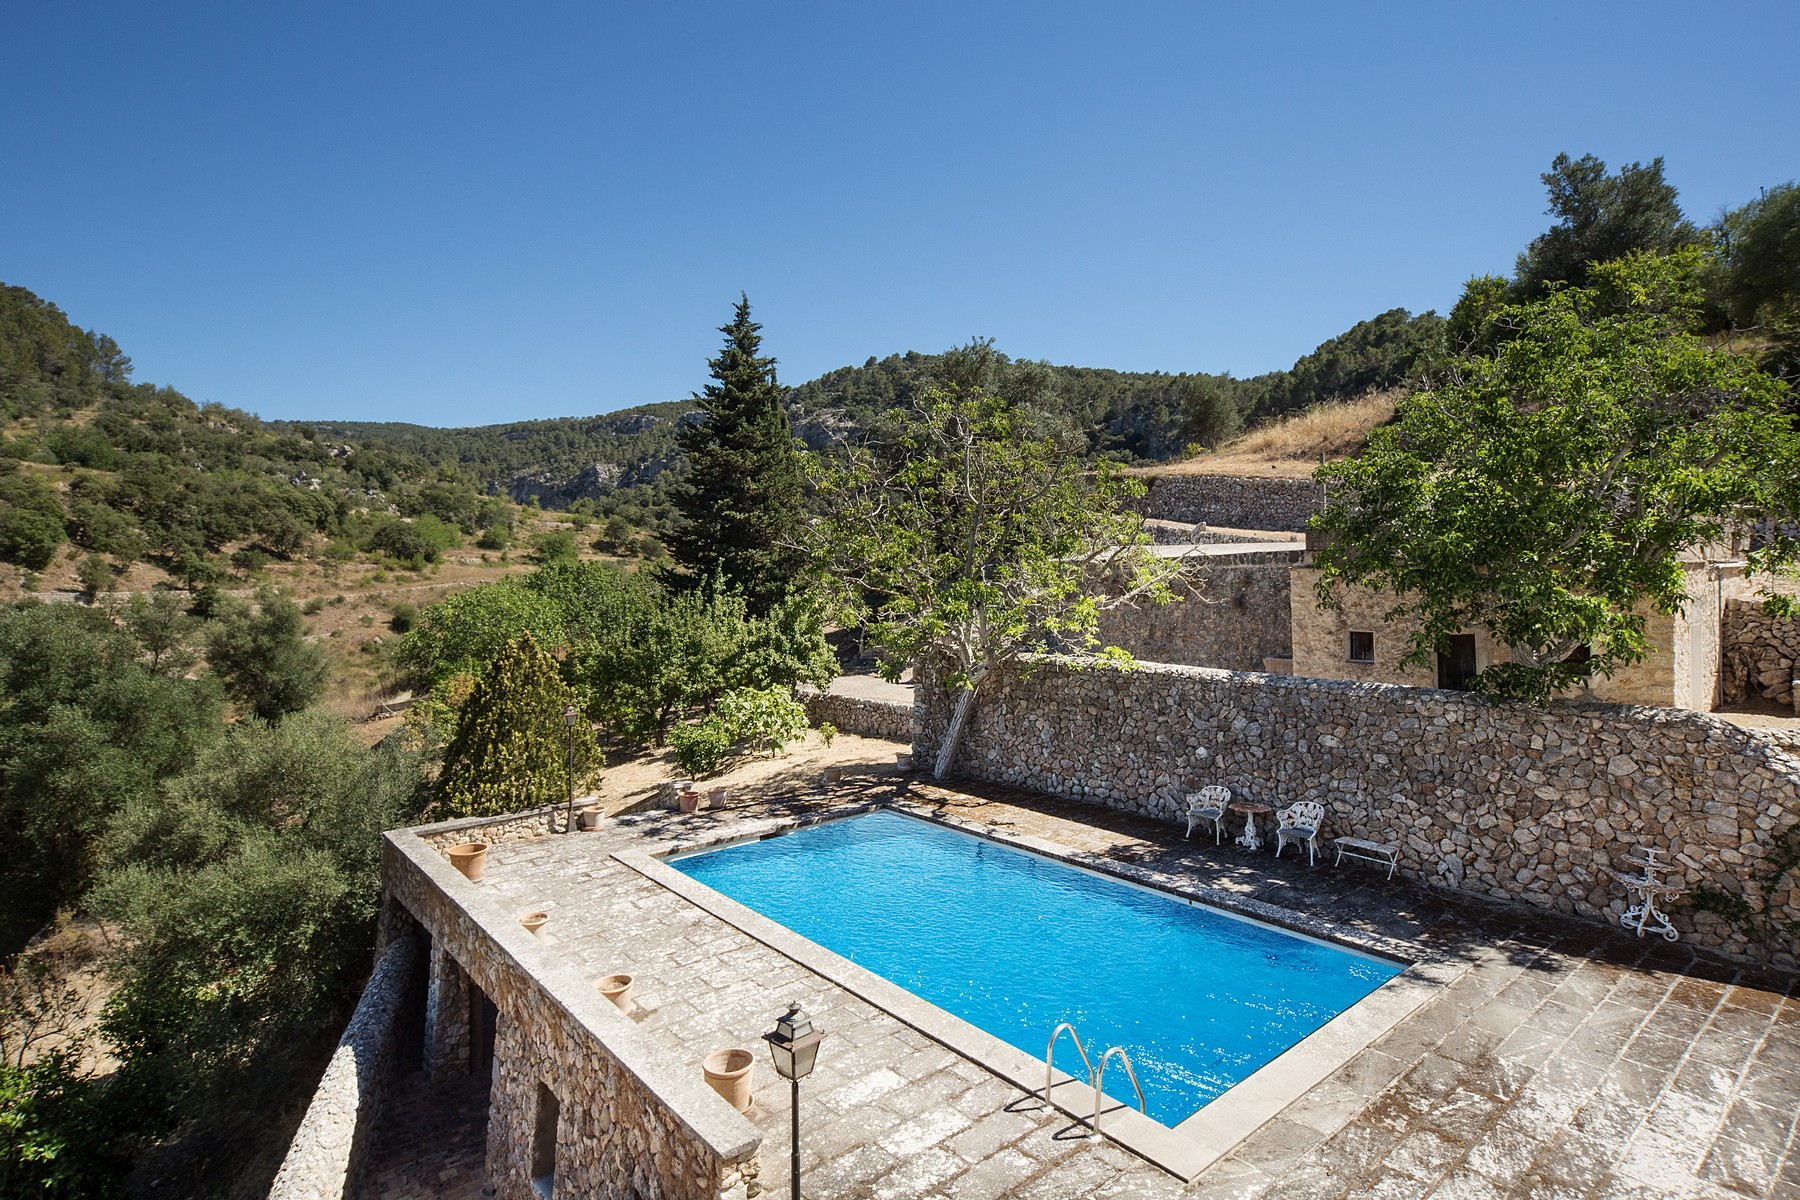 Single Family Home for Sale at Country estate in Puigpunyent Puigpunyent, Mallorca, 07001 Spain